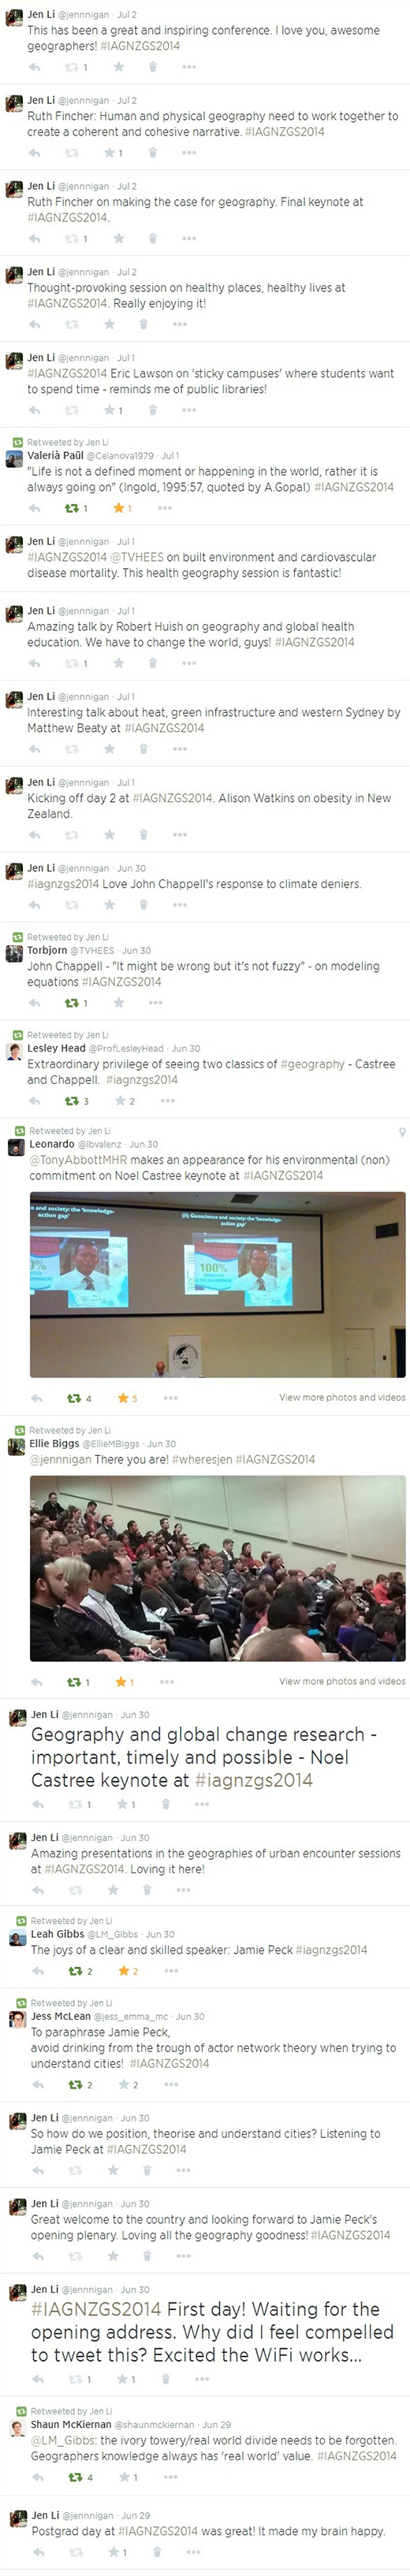 Jen Li's twitter feed from the IAG 2014 conference.